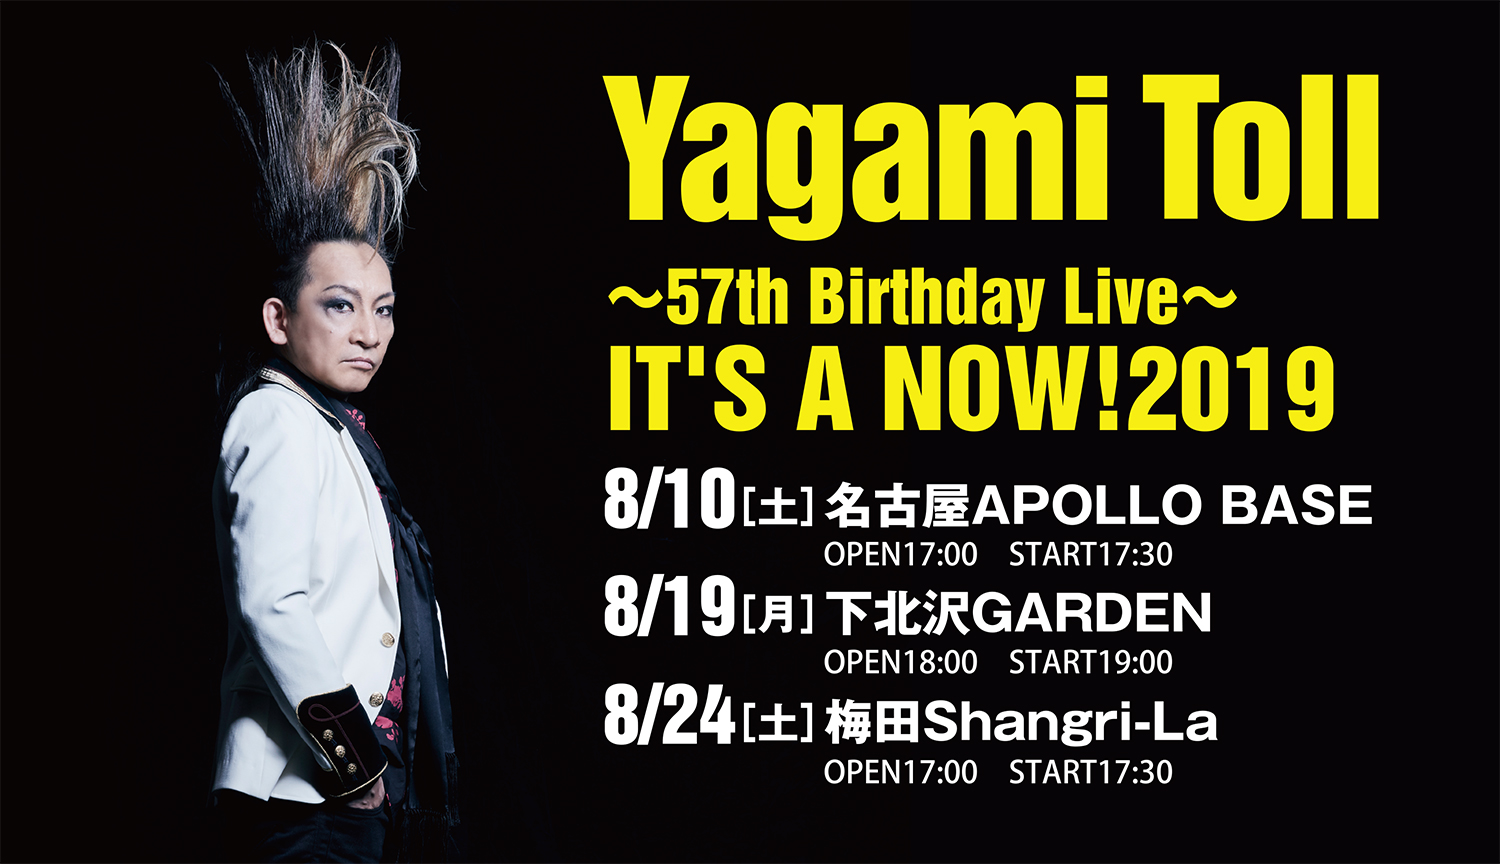 Yagami Toll ~57th Birthday Live~ IT'S A NOW!2019